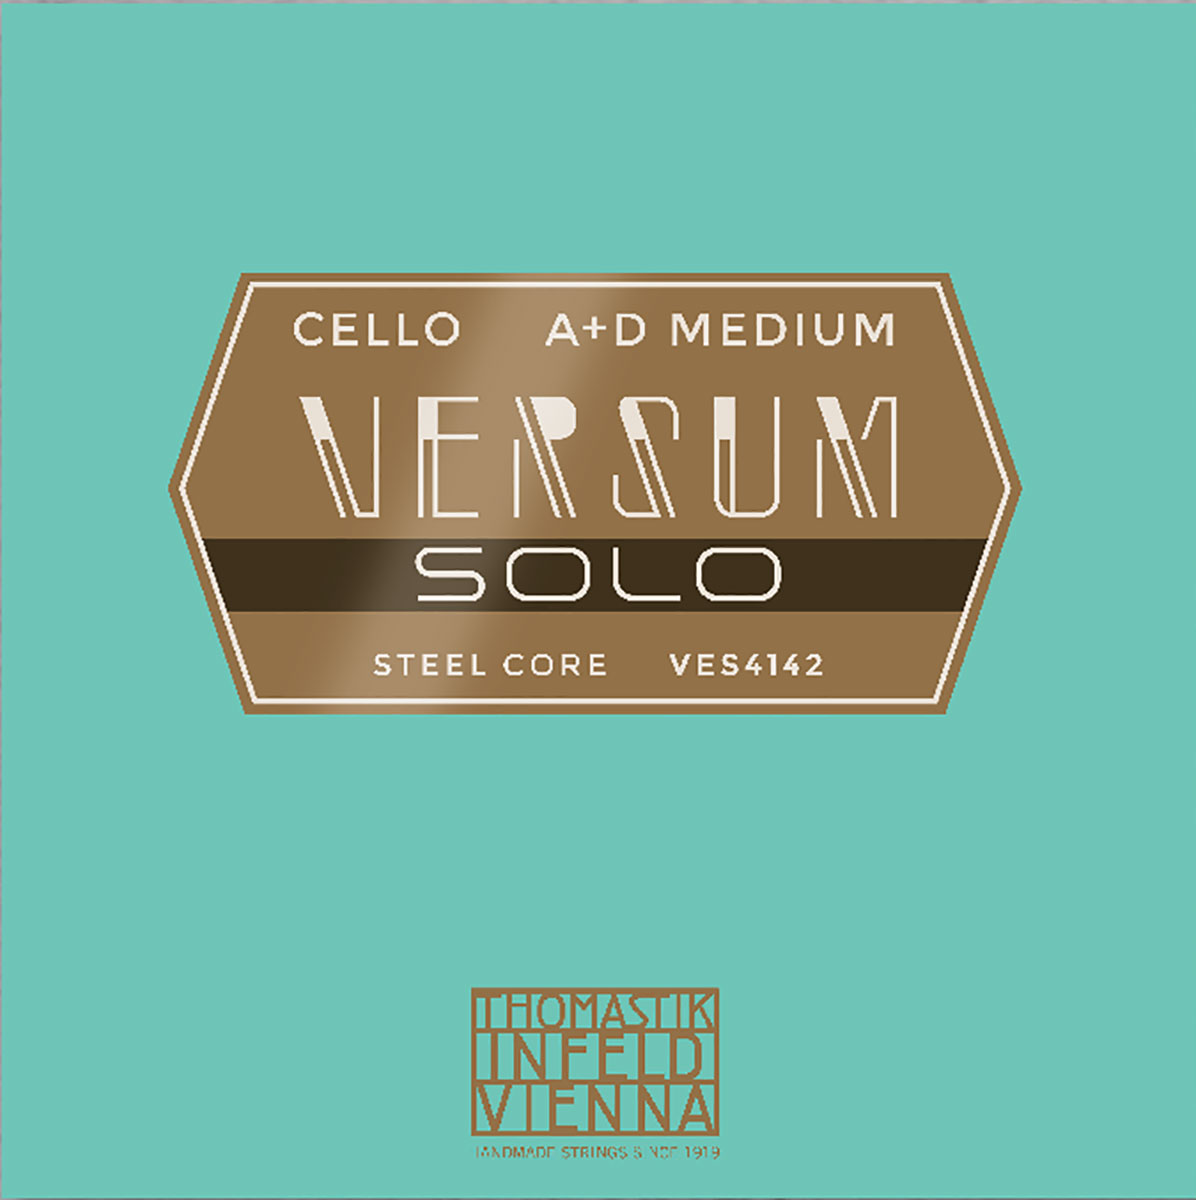 Versum Solo Cello String A + D Pack Multialloy Wound, Steel Core